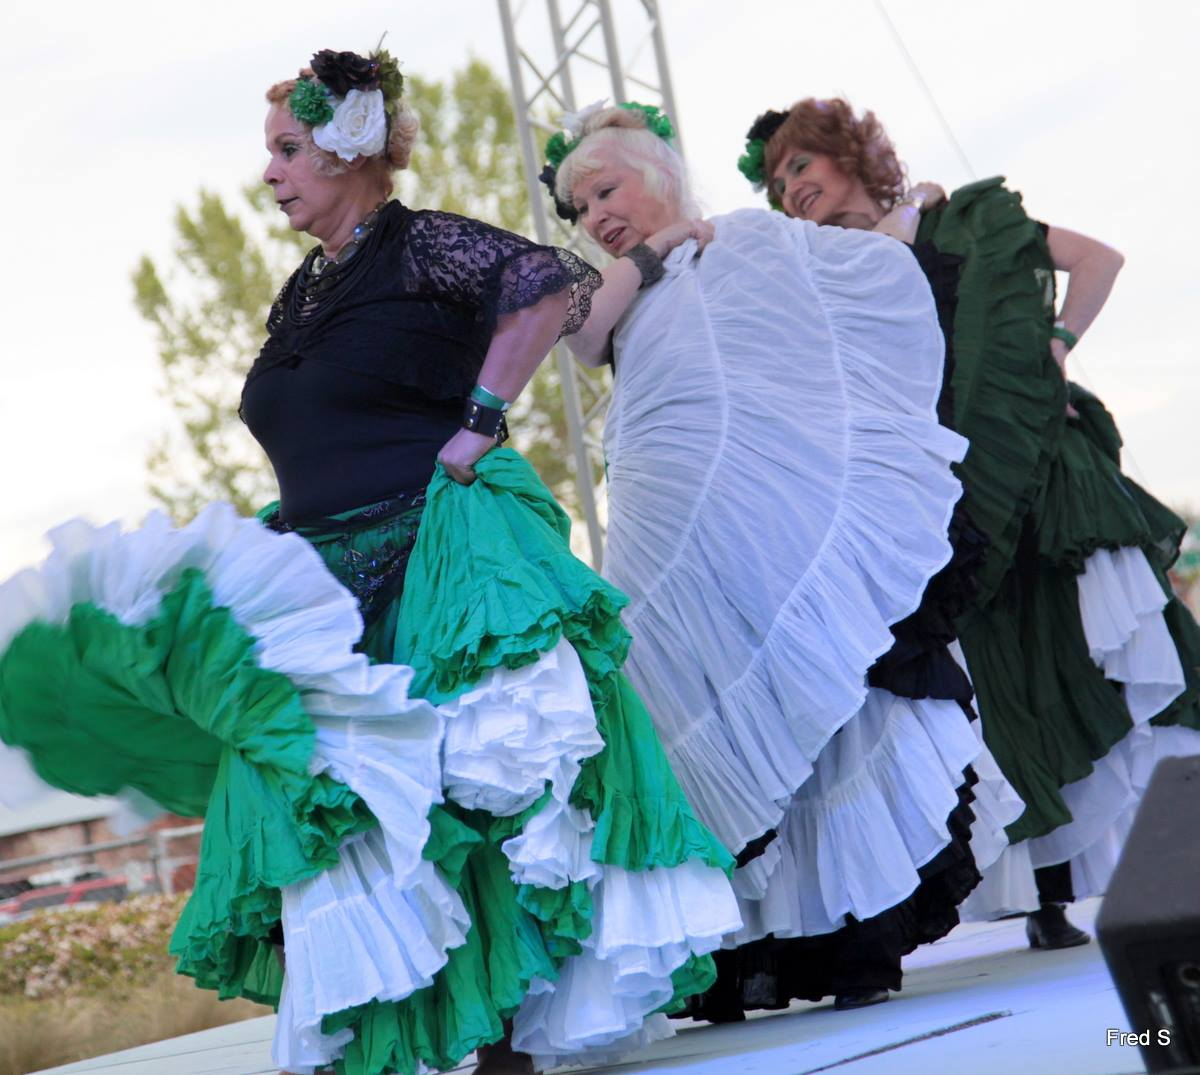 Dancing Through The Skirt performs at the 2016 ParTee On The Green